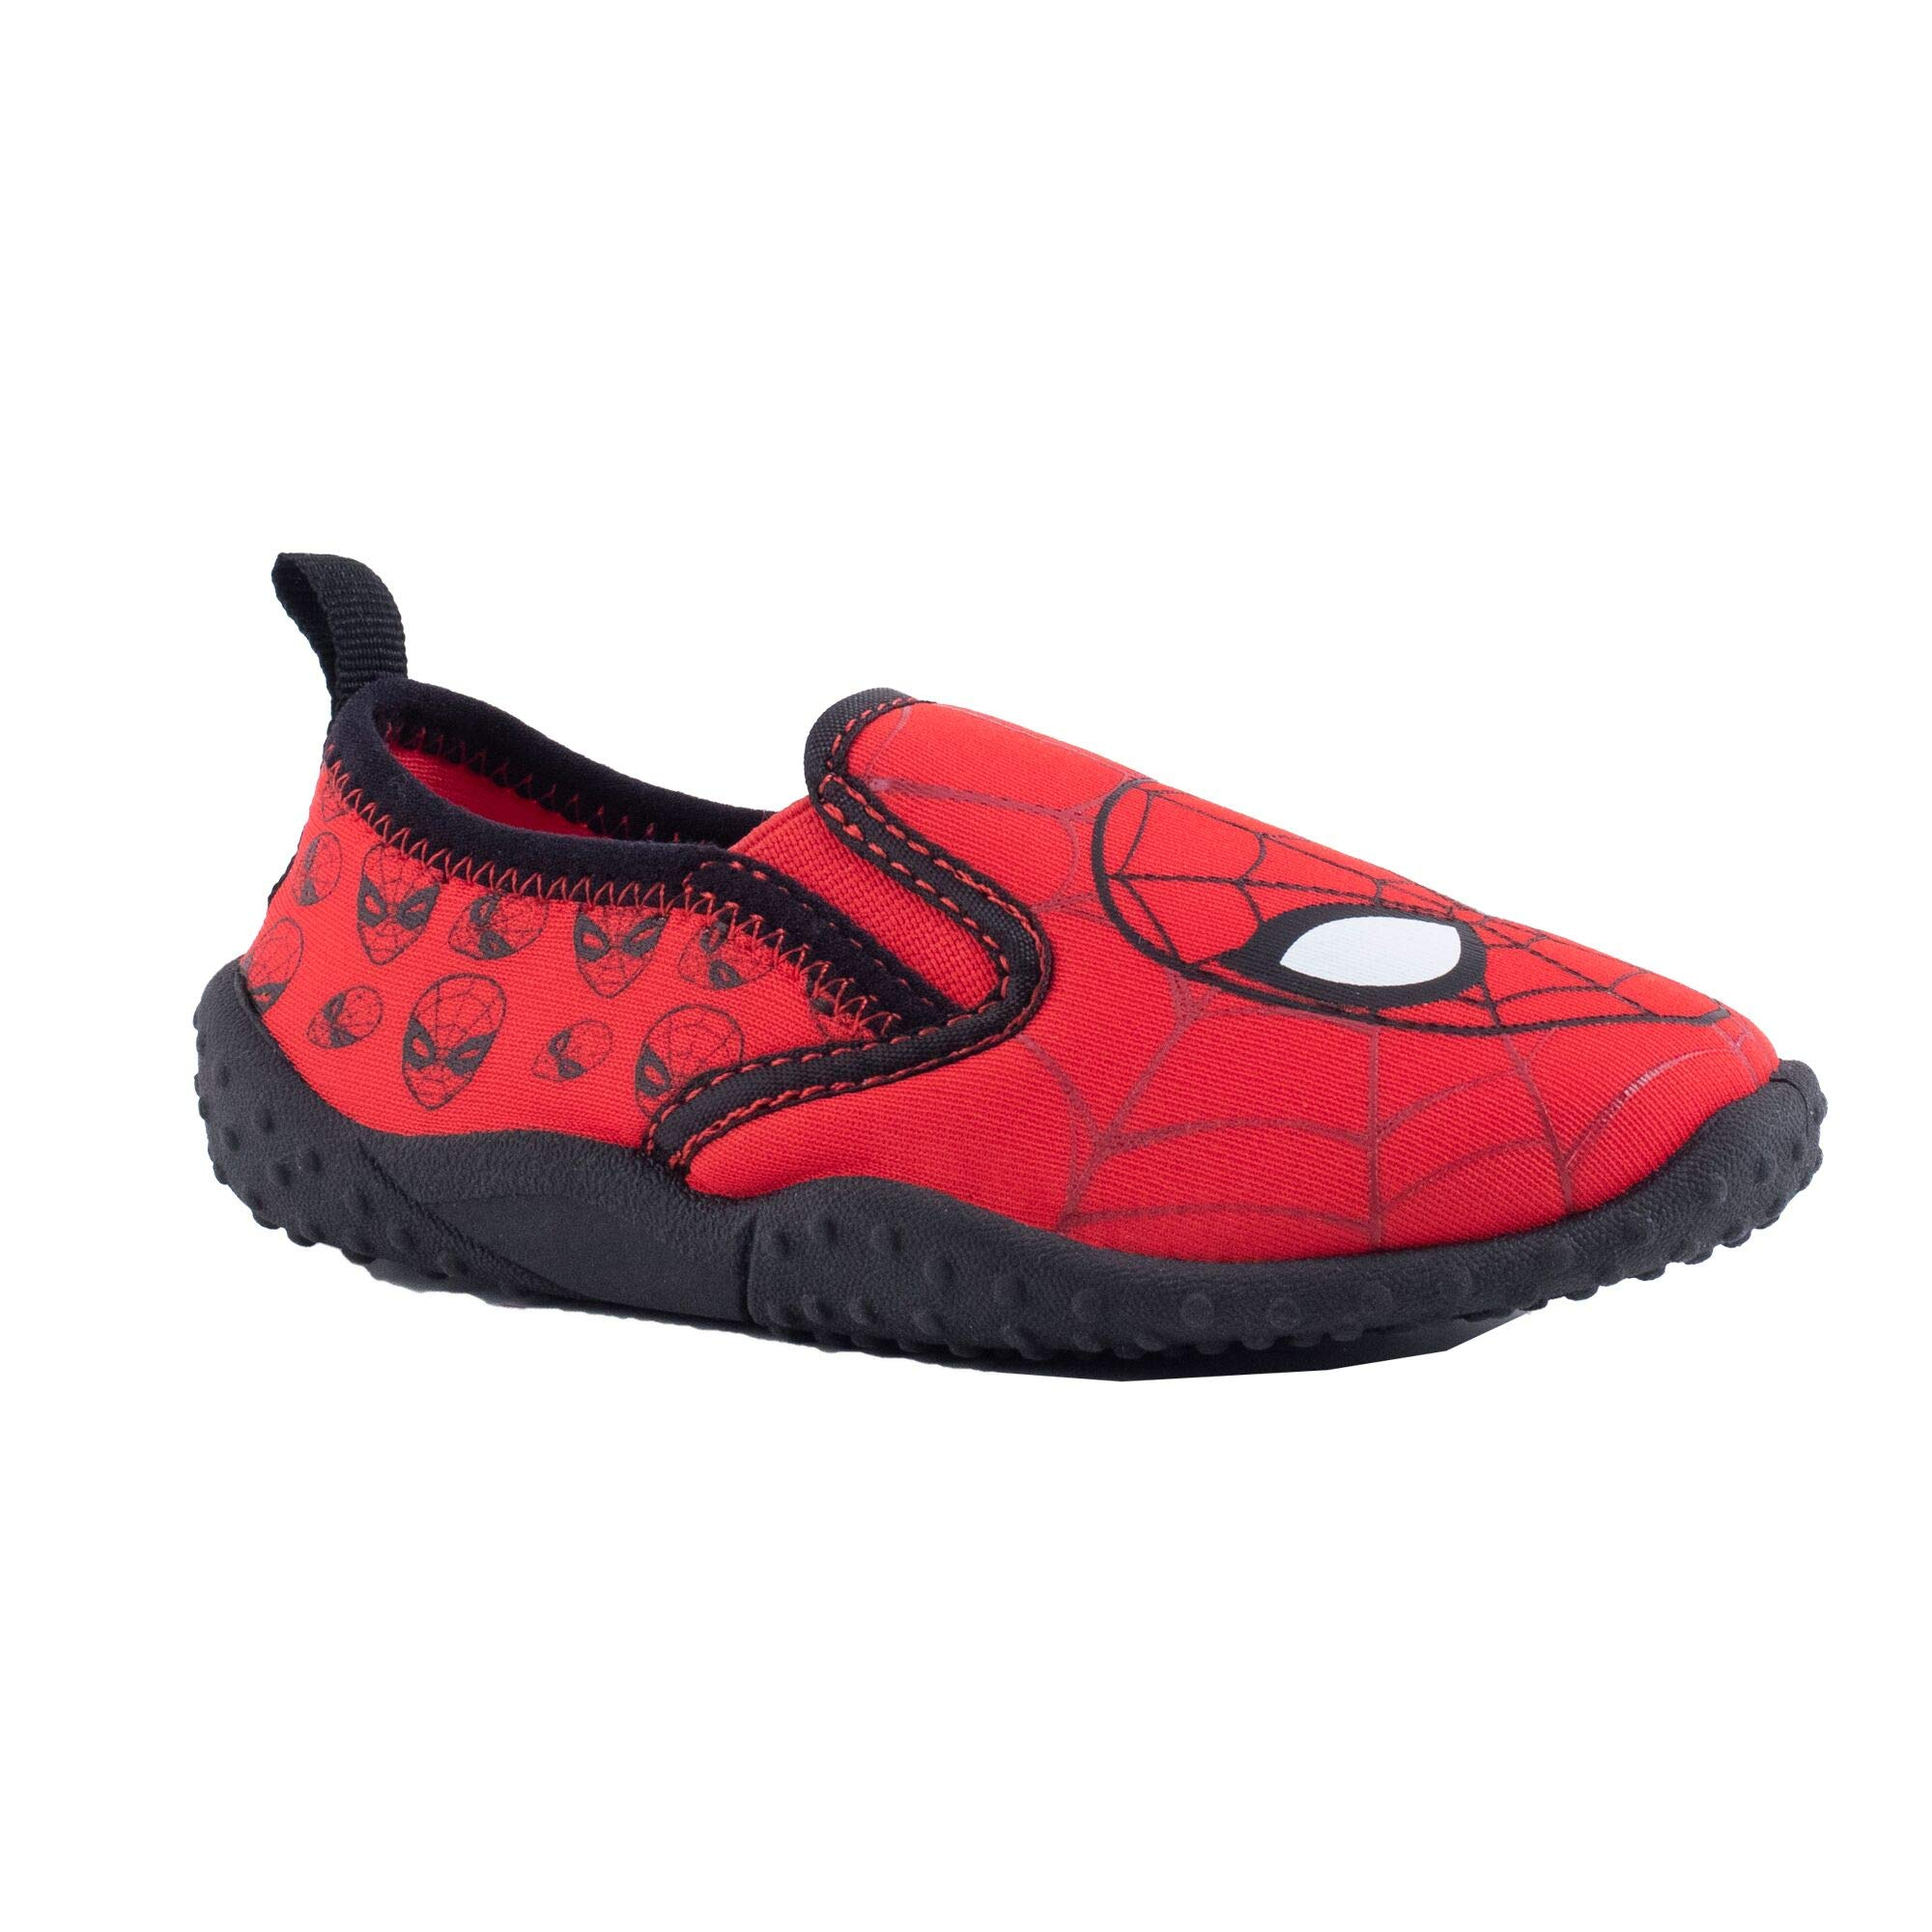 Spiderman Slip On Water Shoes Red Toddler/Little Kid (Large M)